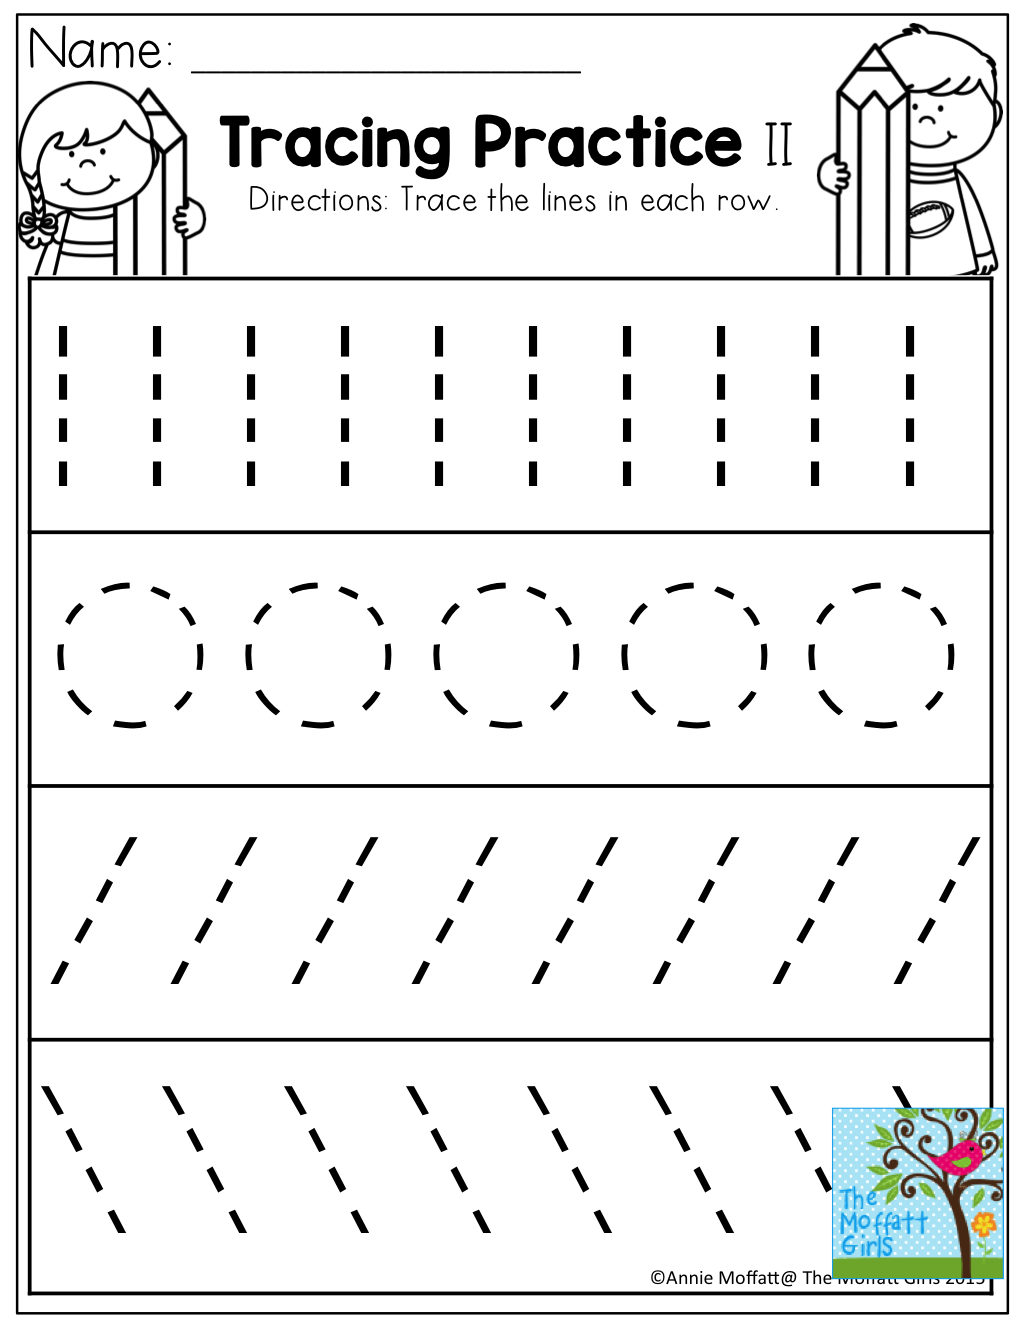 Tracing Practice! Tons Of Printable For Pre-K, Kindergarten with Name Tracing For Grade 1